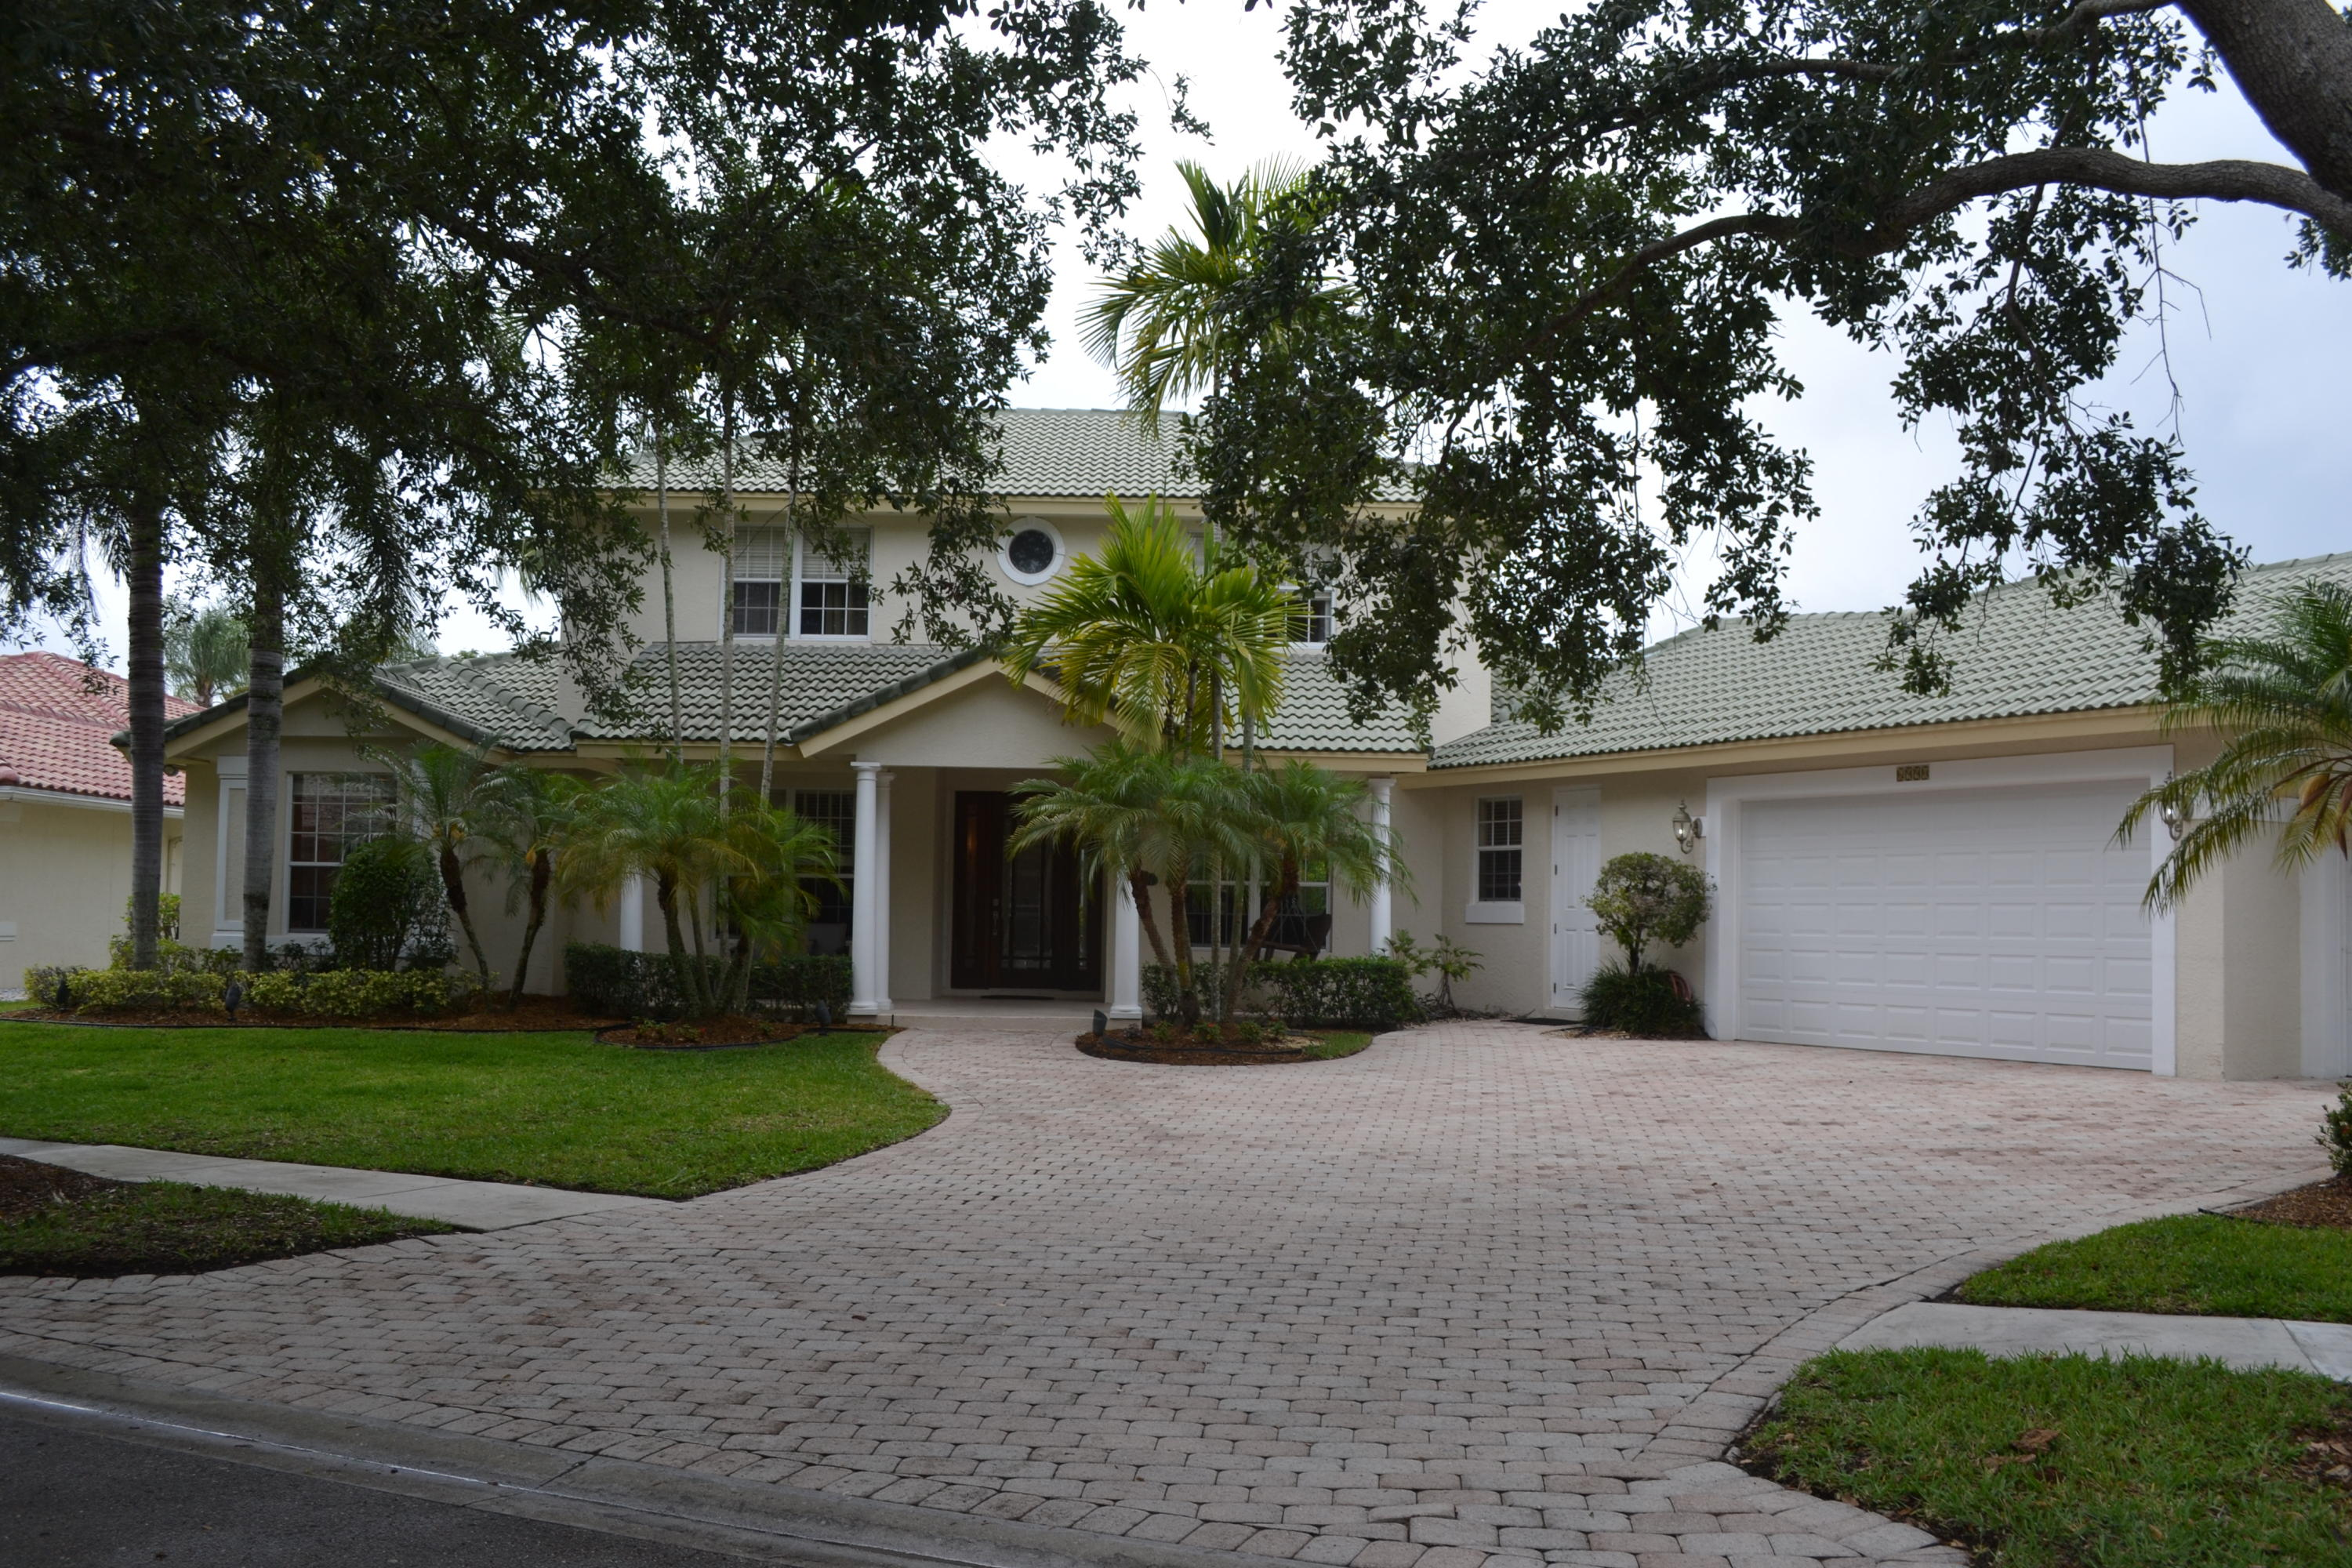 6990 Cypress Cove Circle - Jupiter, Florida